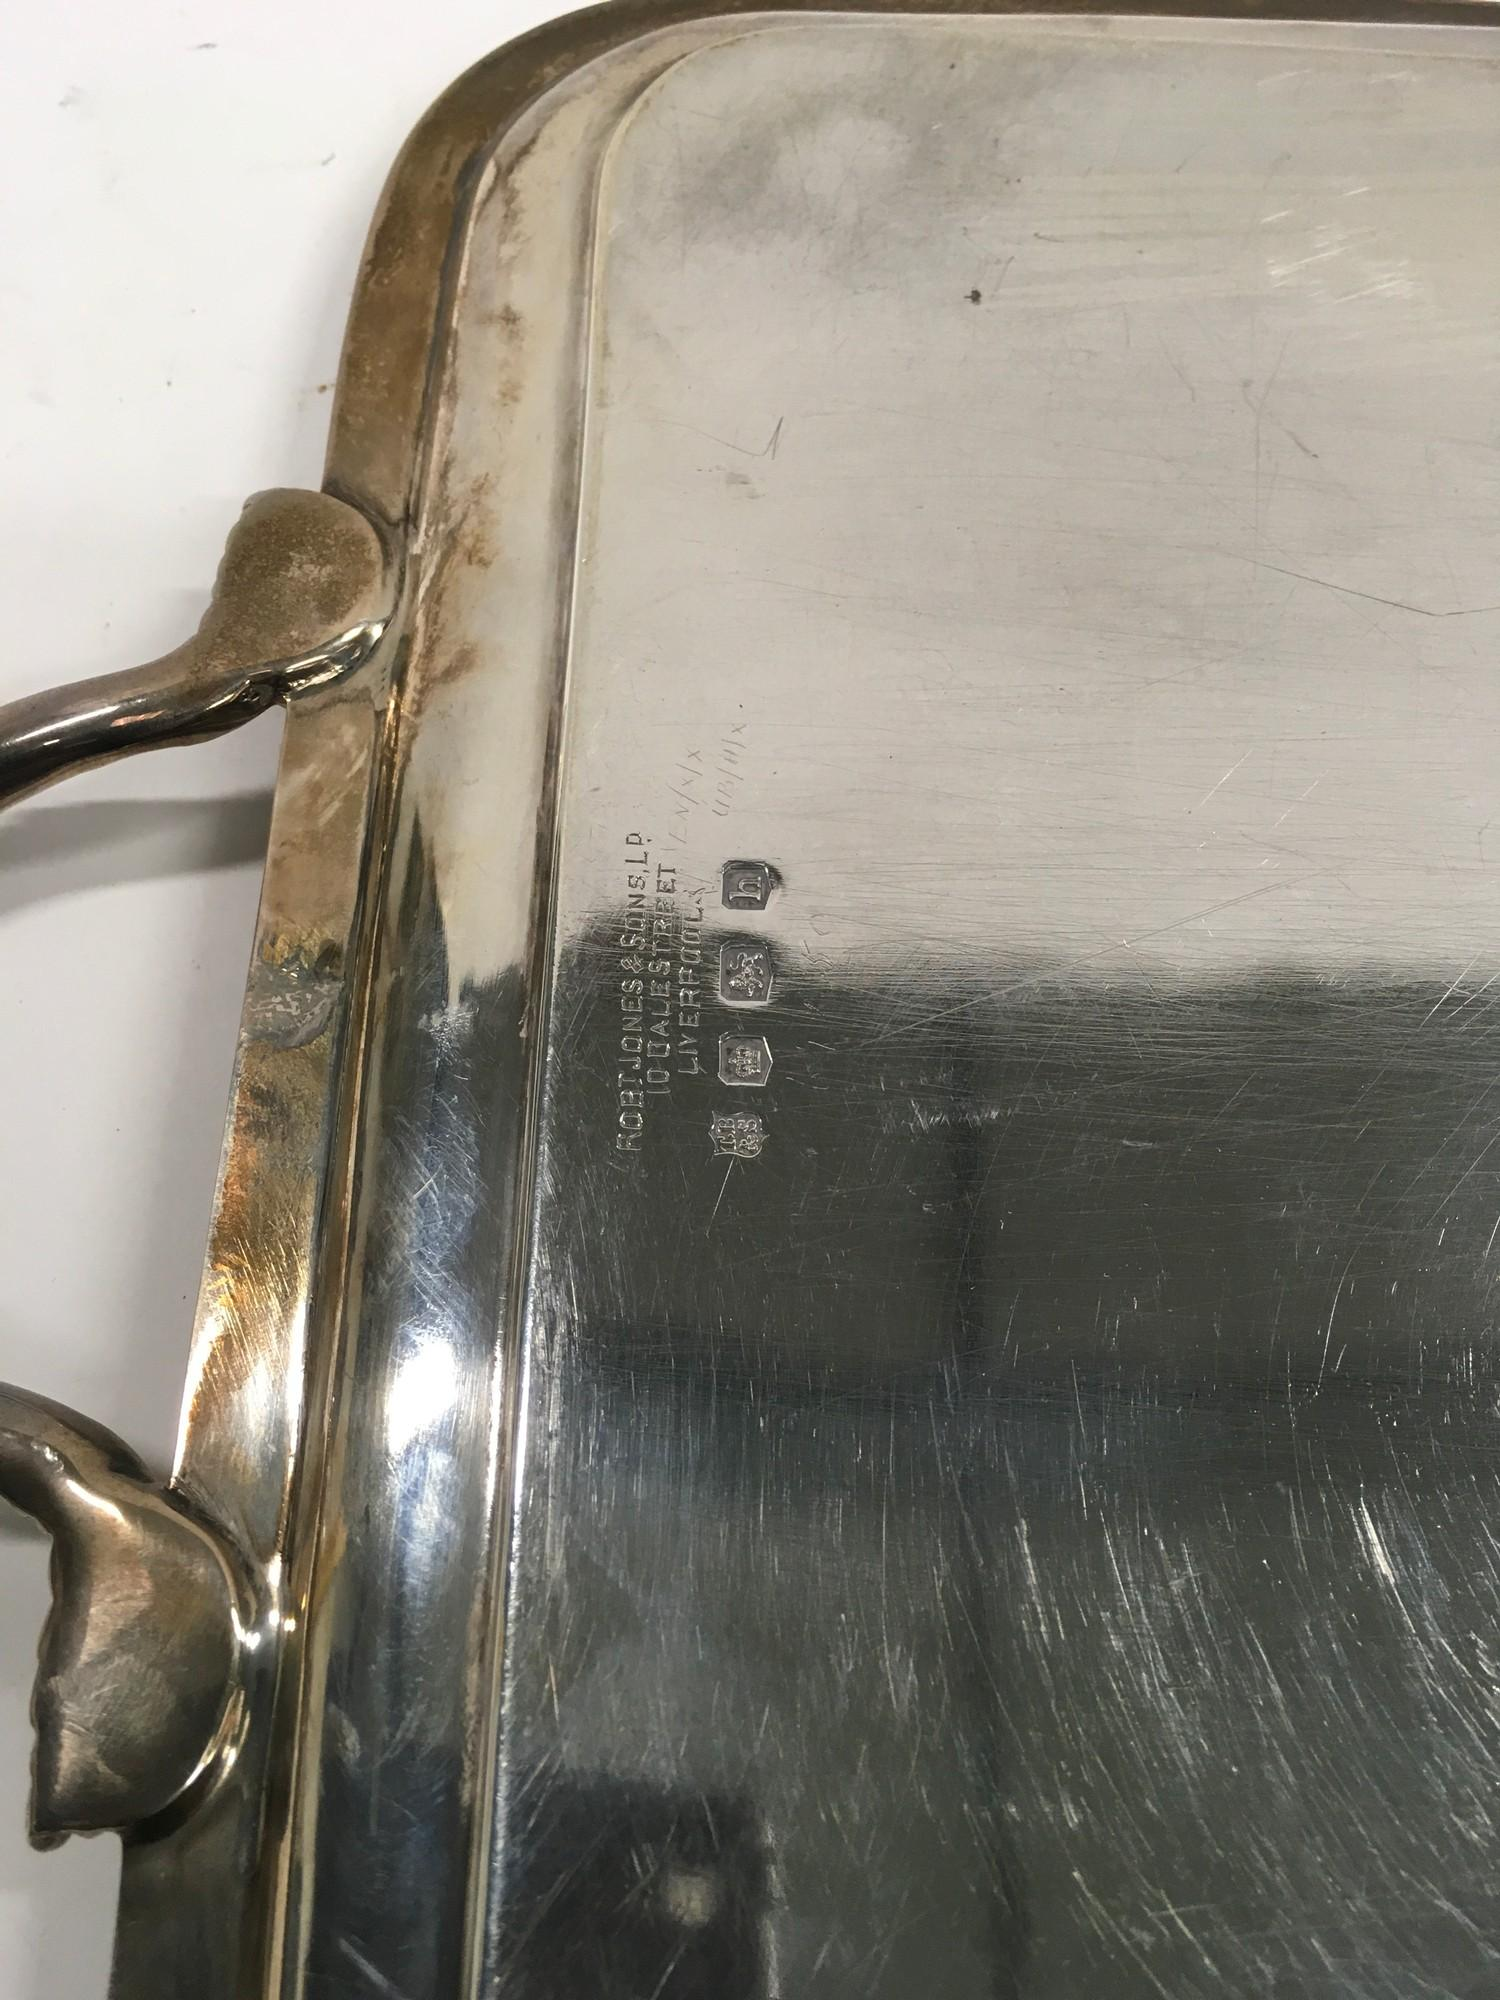 Large two handed Silver tray of approximately 2 kilos in weight. - Image 5 of 5